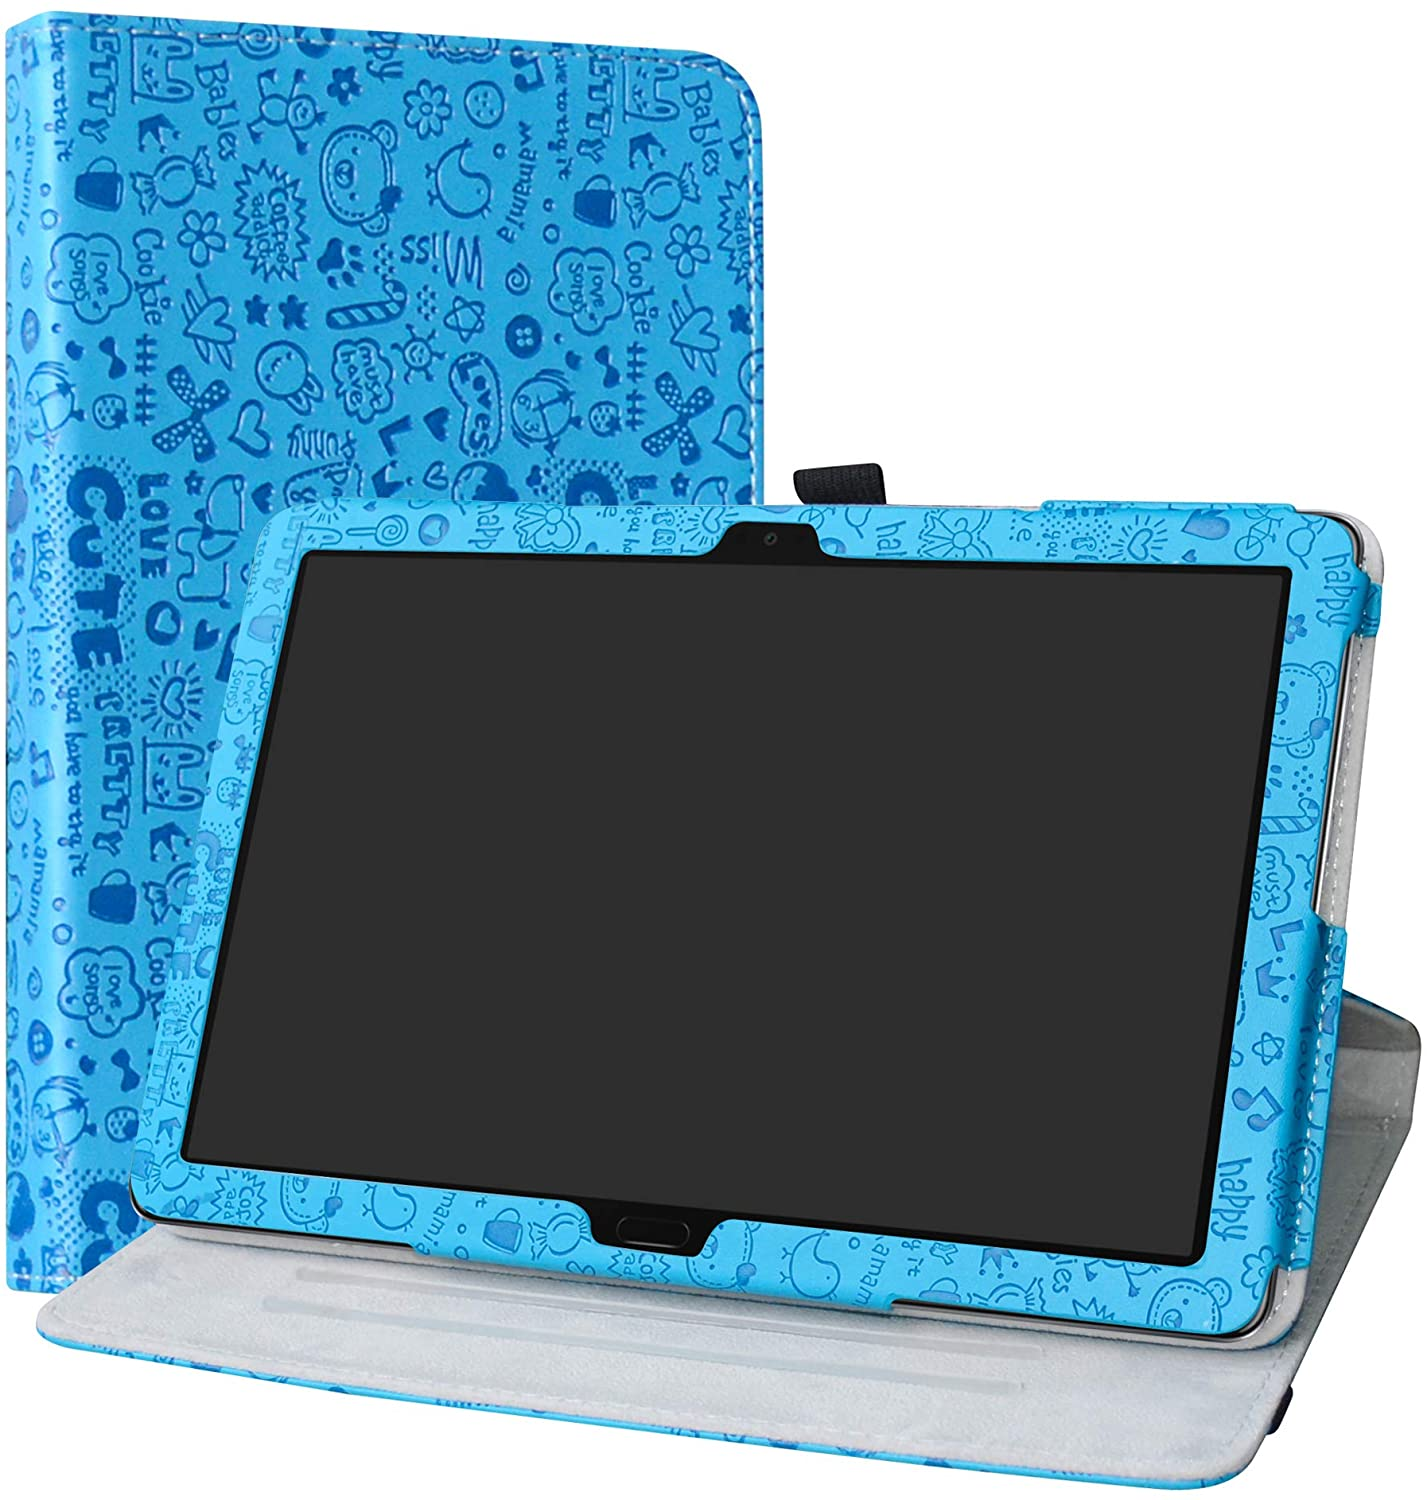 MediaPad M5 Lite Rotating Case,LiuShan 360 Degree Rotation Stand PU Leather with Cute Pattern Cover for 10.0